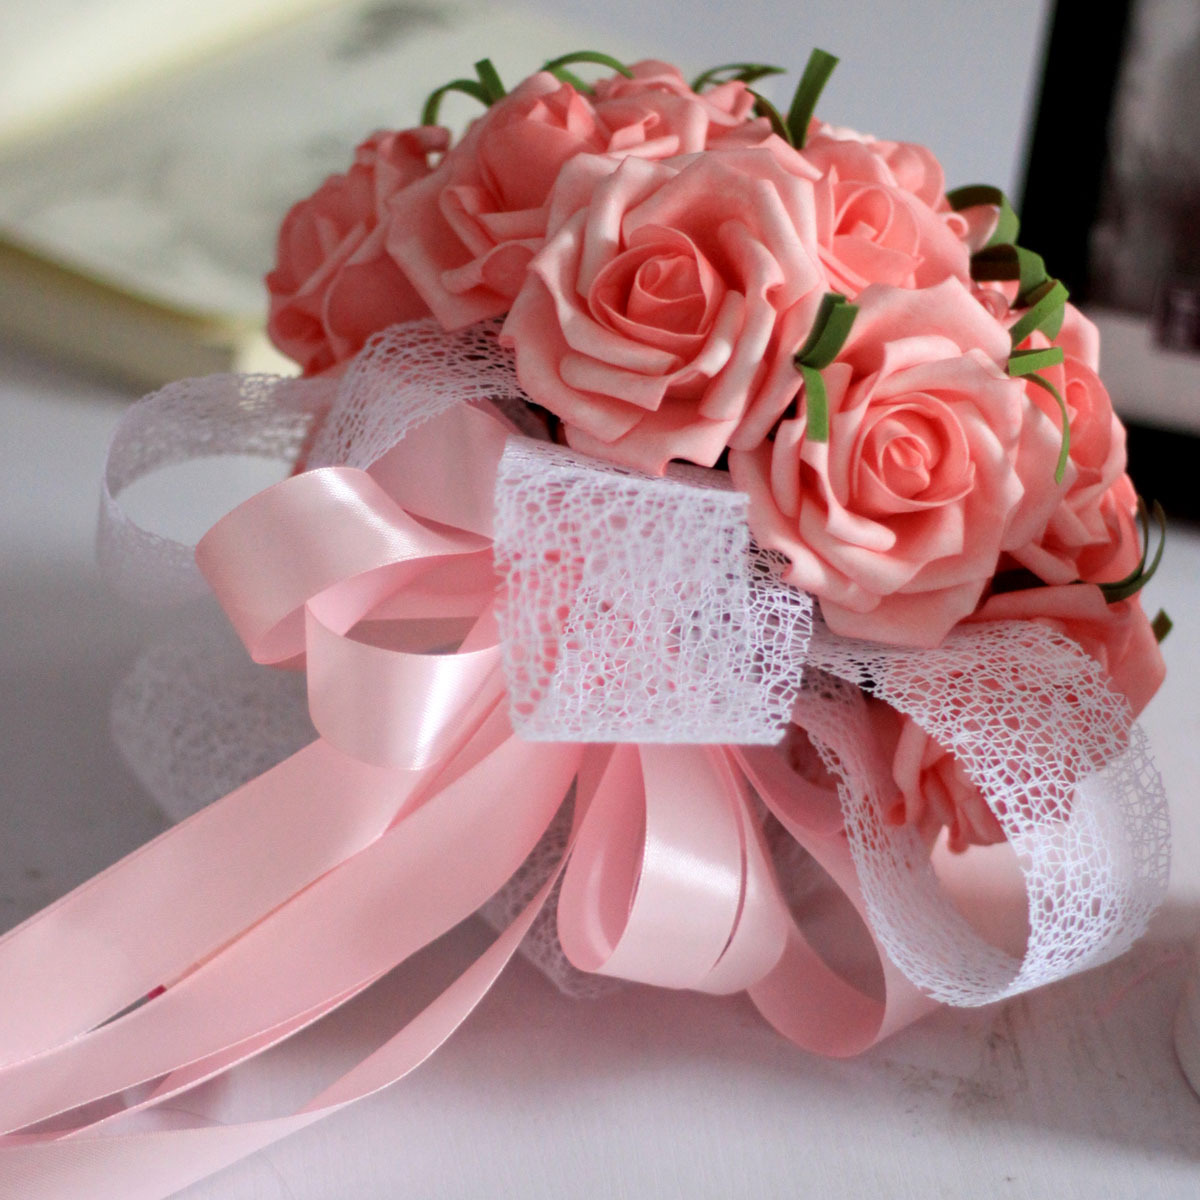 Usd 1299 holding flowers fake flowers silk flowers decorative holding flowers fake flowers silk flowers decorative flowers korean wedding wedding bride bridesmaids holding corsage wrist izmirmasajfo